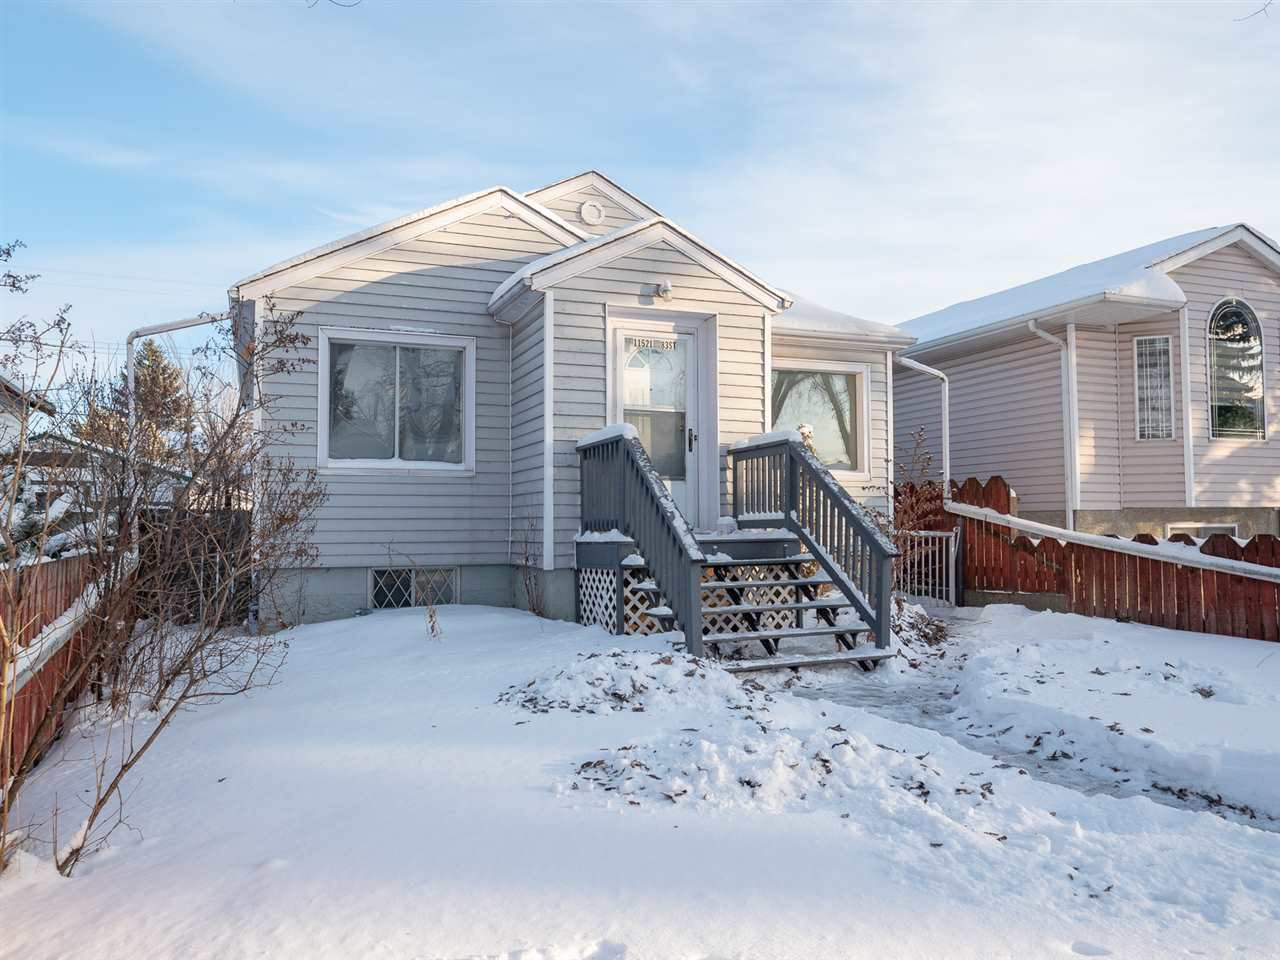 Main Photo: 11521 83 Street in Edmonton: Zone 05 House for sale : MLS®# E4183986